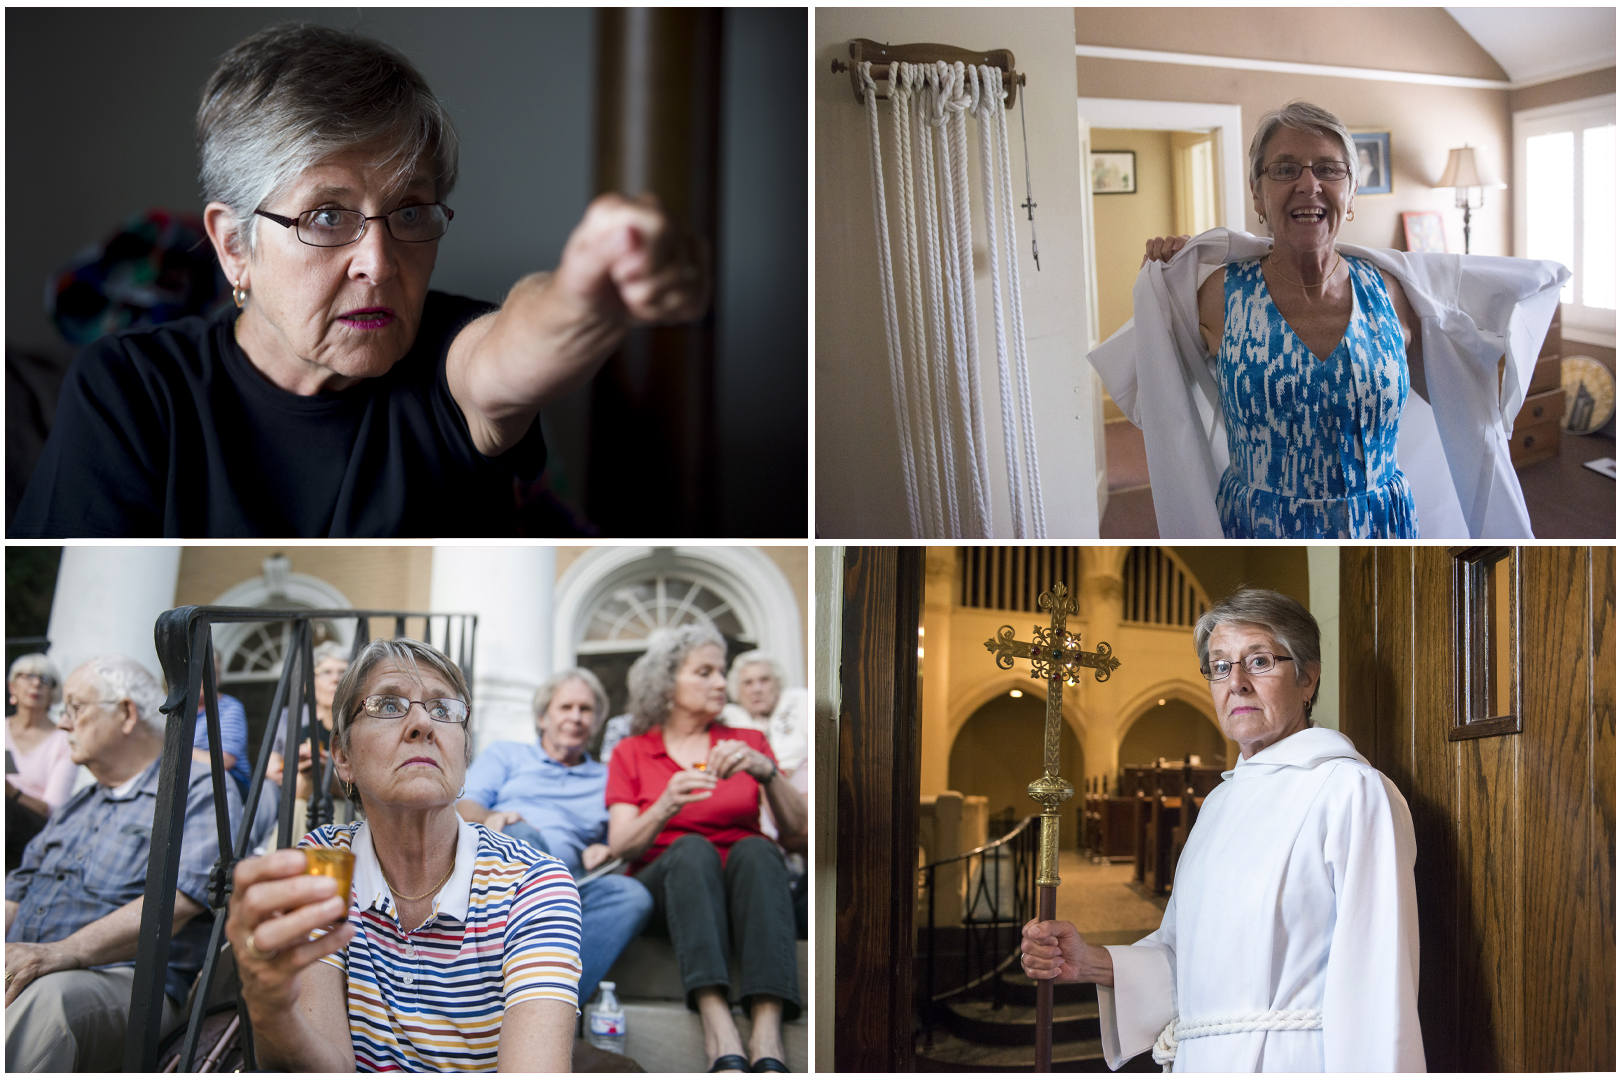 Rev. Elaine Blanchard - At her home describing police intimidation; before service at St. Mary's Episcopal Cathedral; and during an anti-death penalty vigil.